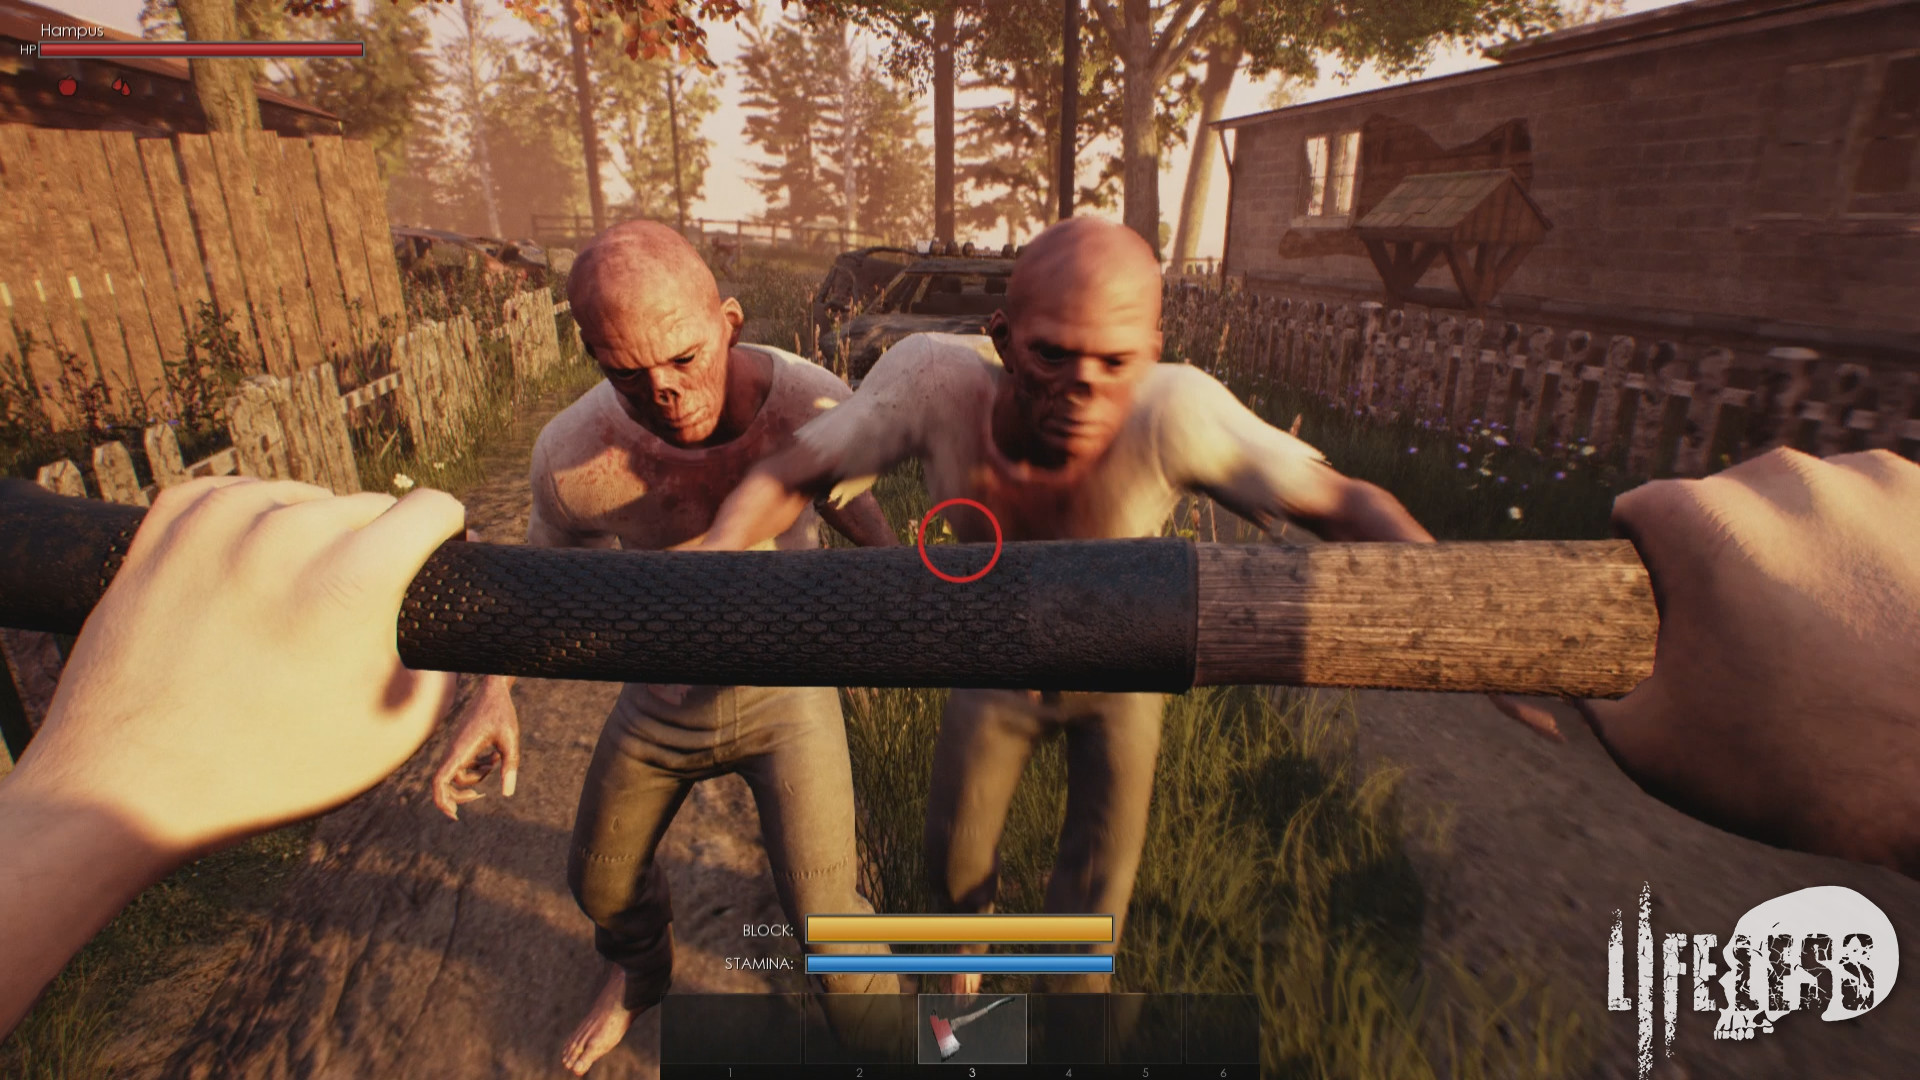 Lifeless: Zombie-Survival-MMO jetzt im Early Access